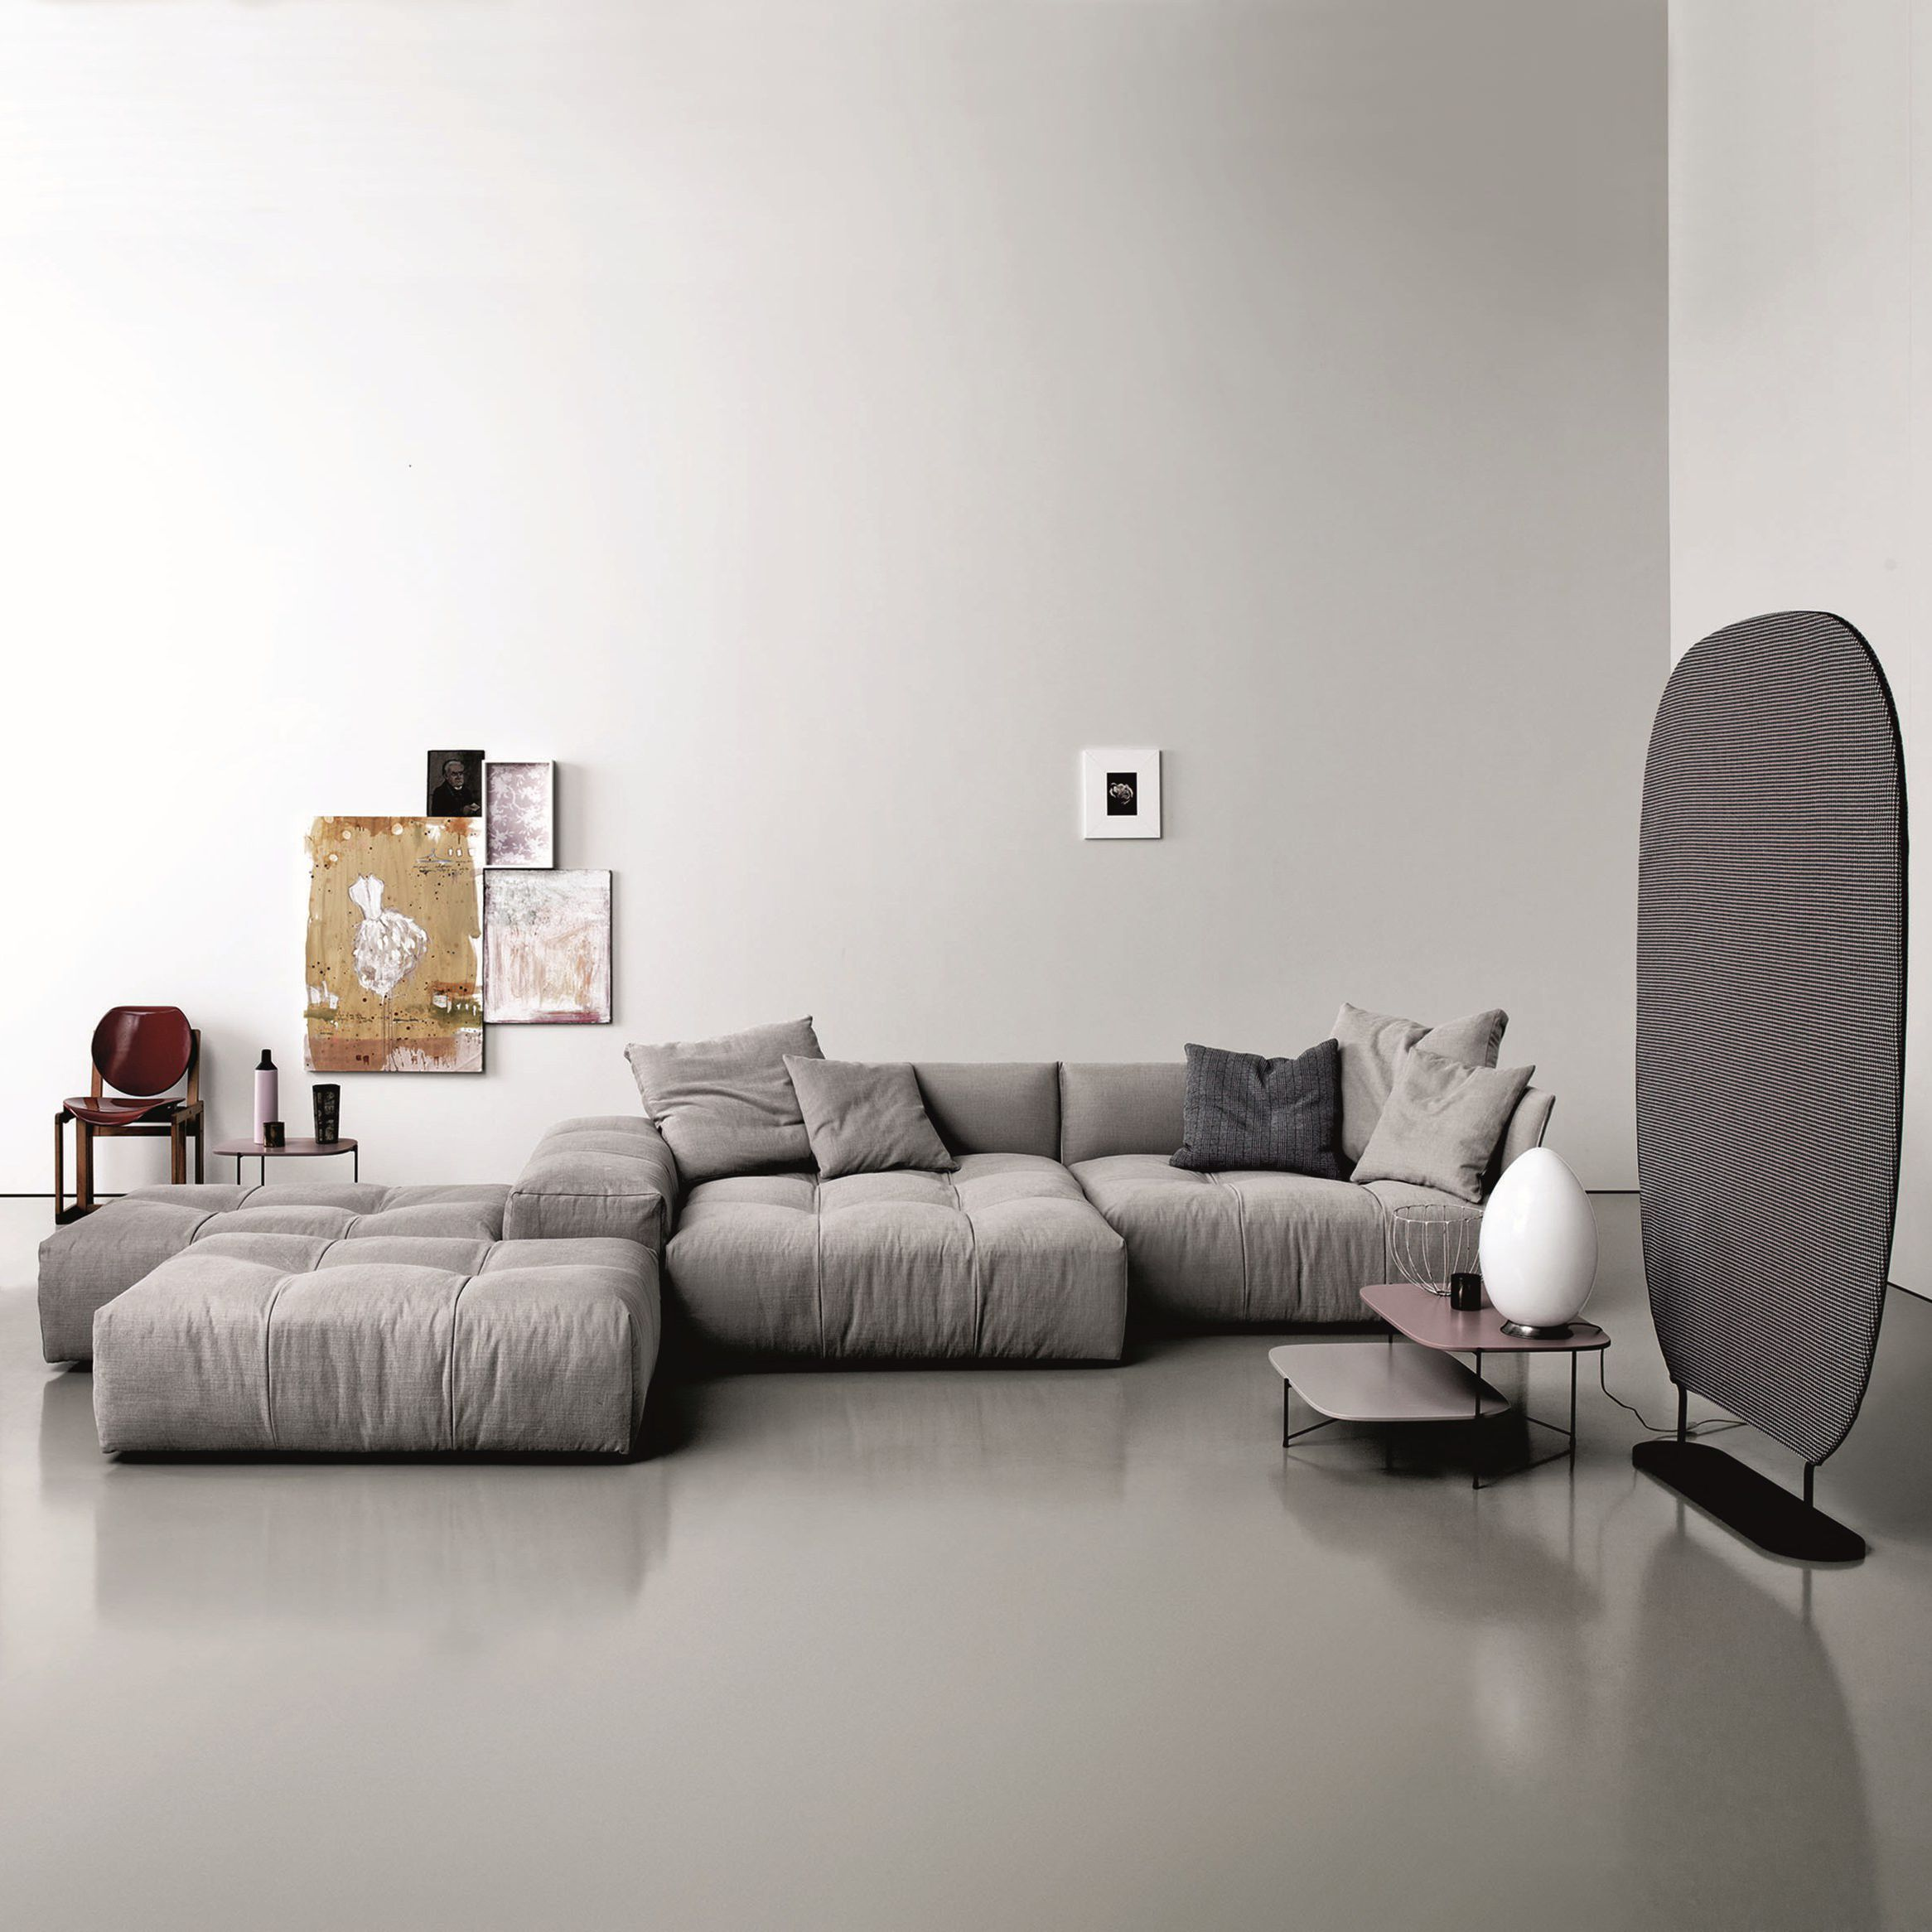 Pixel Sofa By Saba Italia Designed By Sergio Bicego Sofa Design Home Living Room Sofa Buying Guide